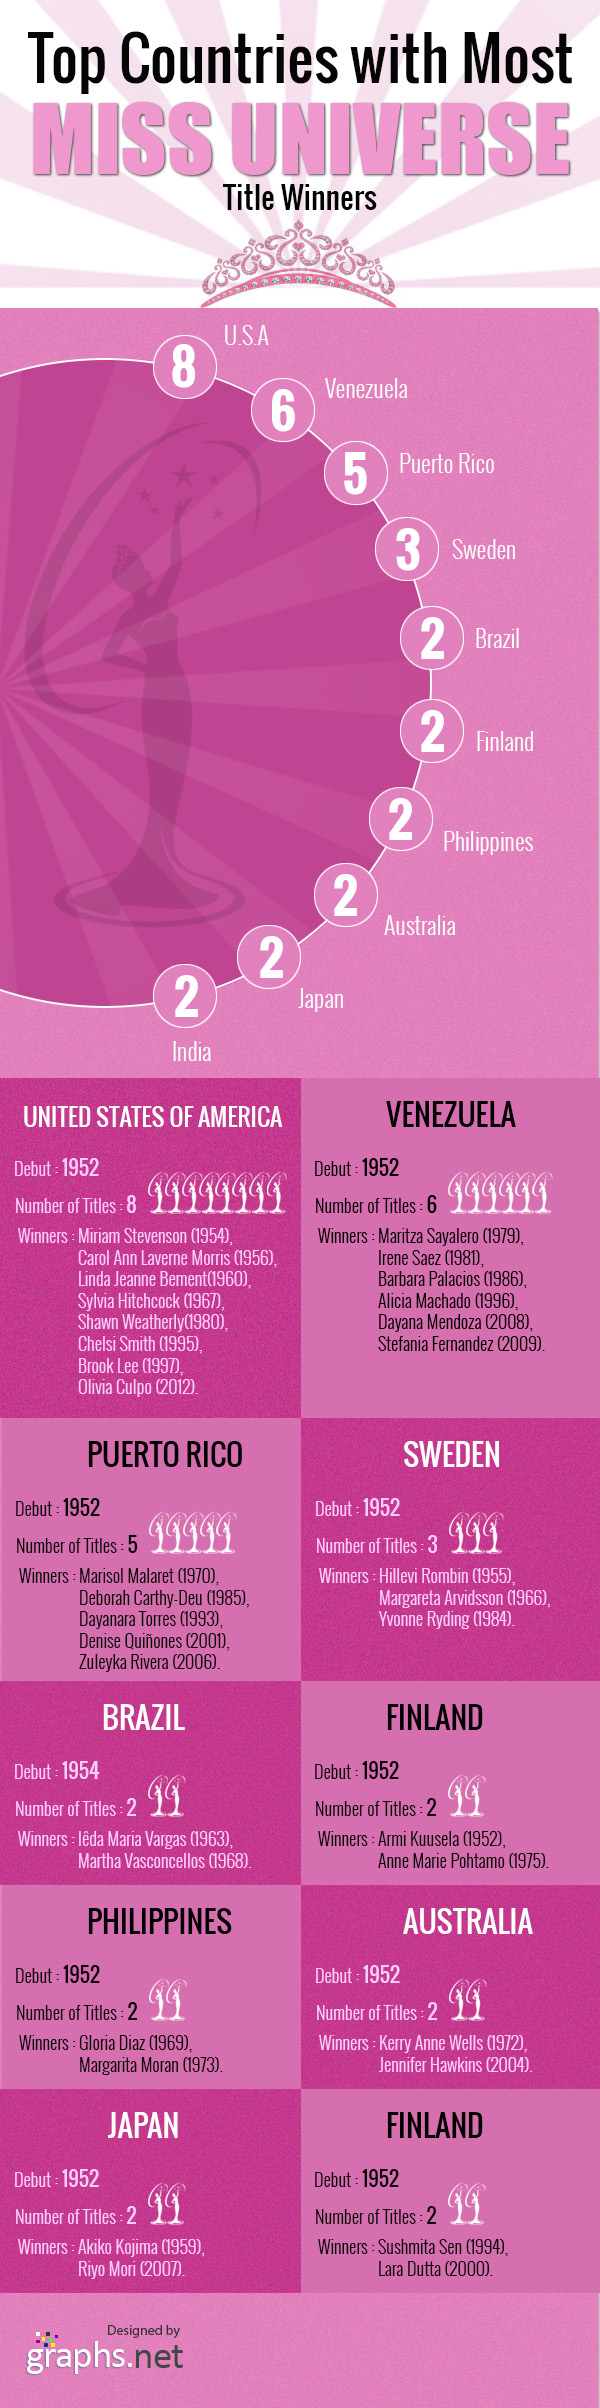 Top Countries with Most Miss Universe Title Winners